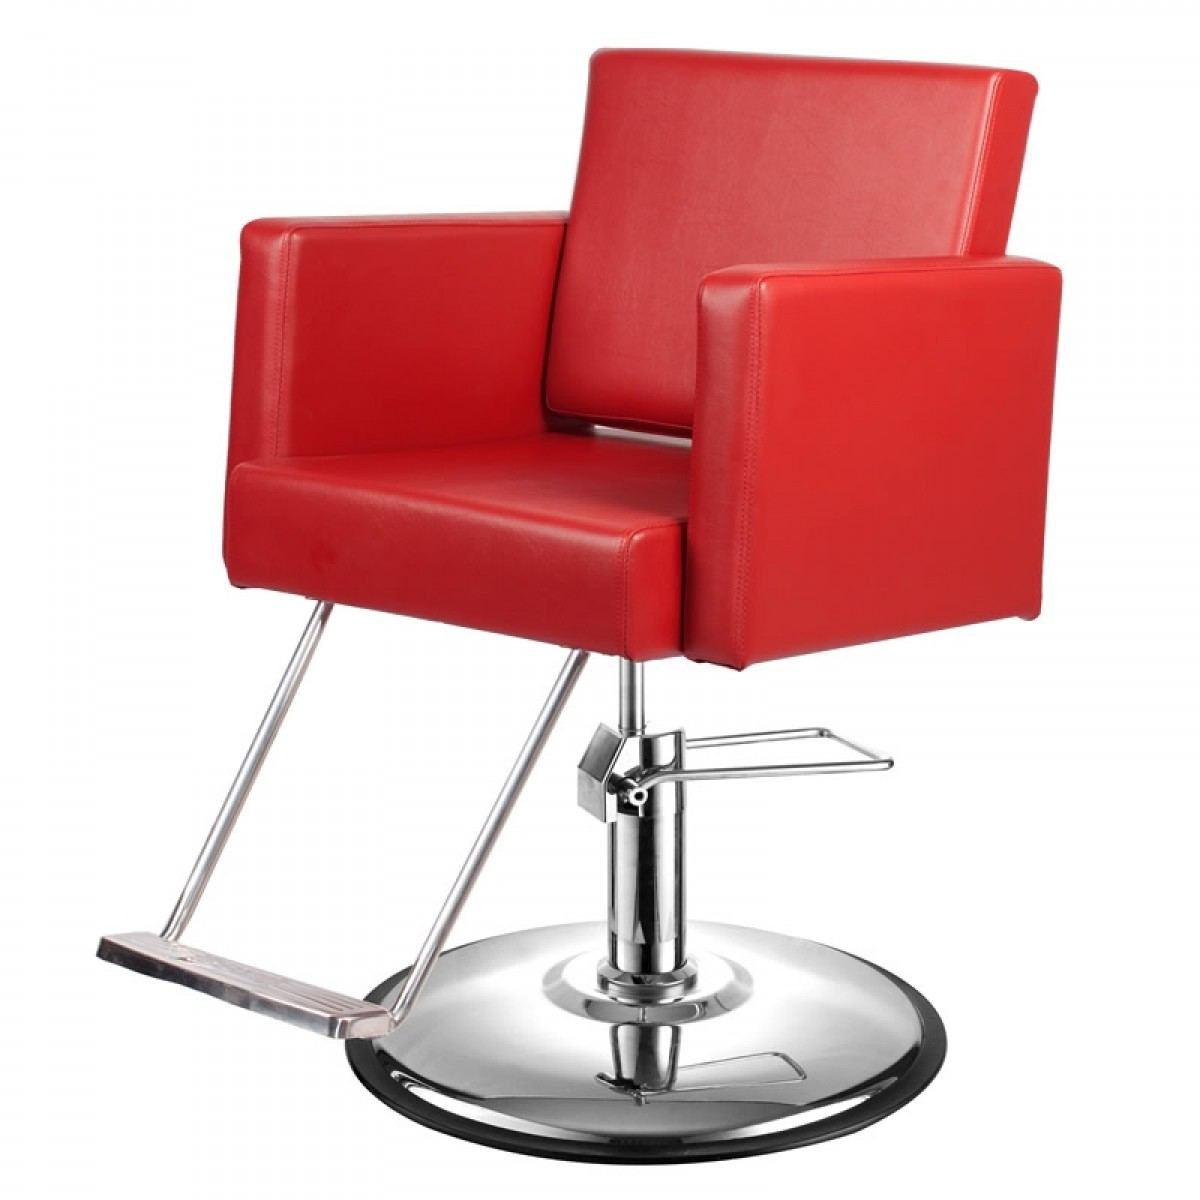 Red Salon Chairs Quotcanon Quot Salon Styling Chair Salon Chairs Styling Chairs